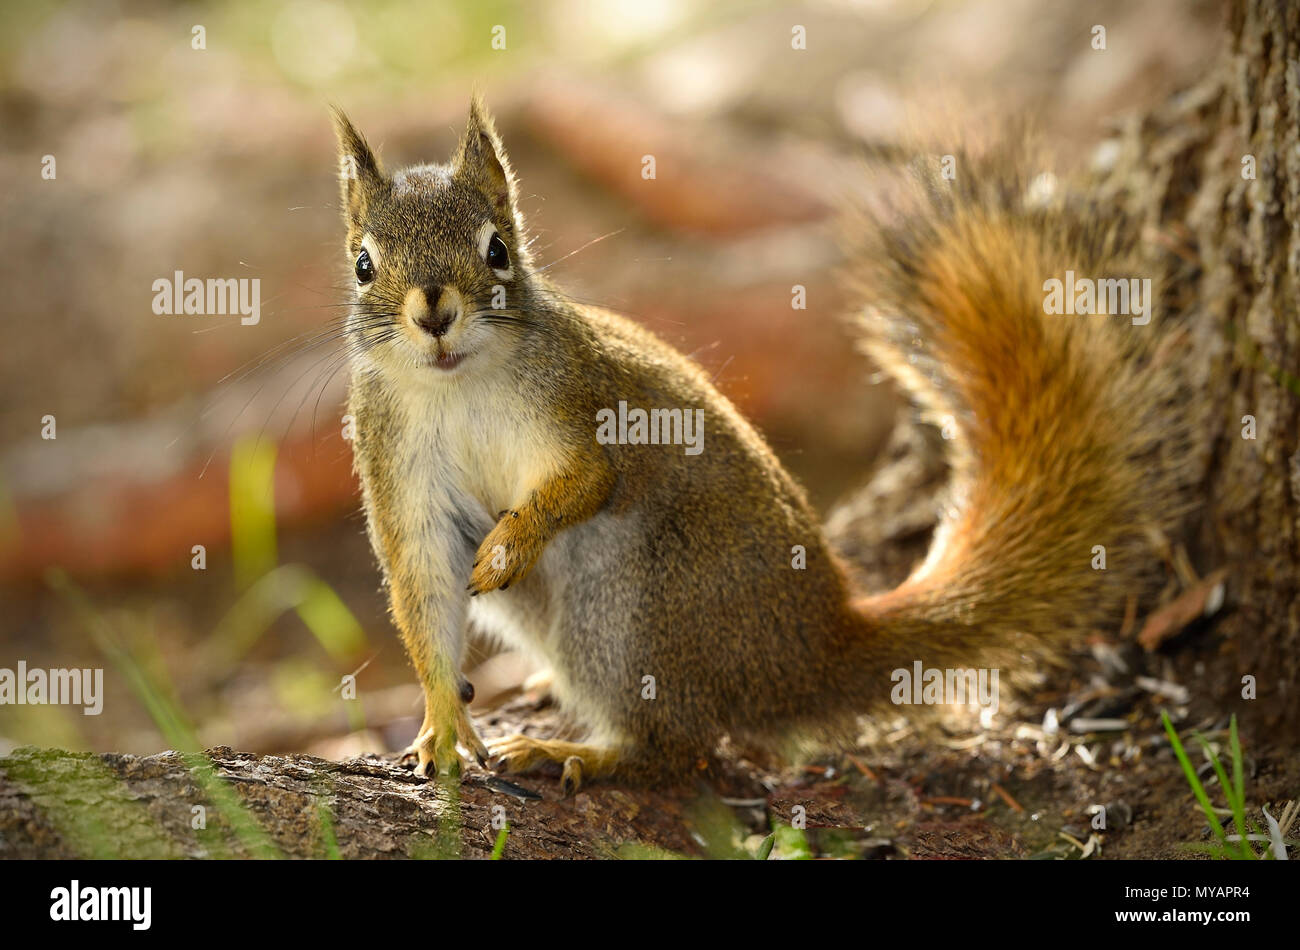 A close up image of a wild red squirrel  'Tamiasciurus hudsonicus'; sitting by a tree trunk with a questioning expression on his face, near Hinton Alb - Stock Image